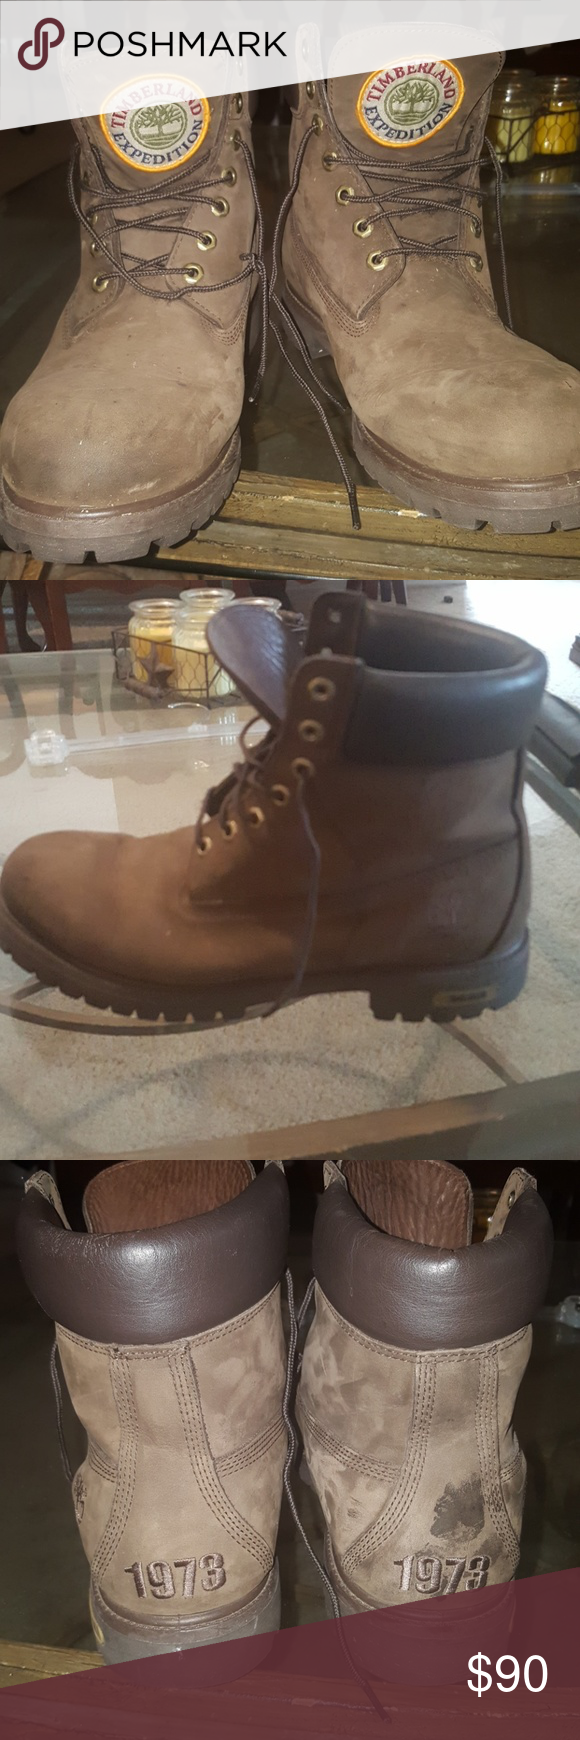 Timberland Shoes | Rare Timberland 1973 Expedition Boots